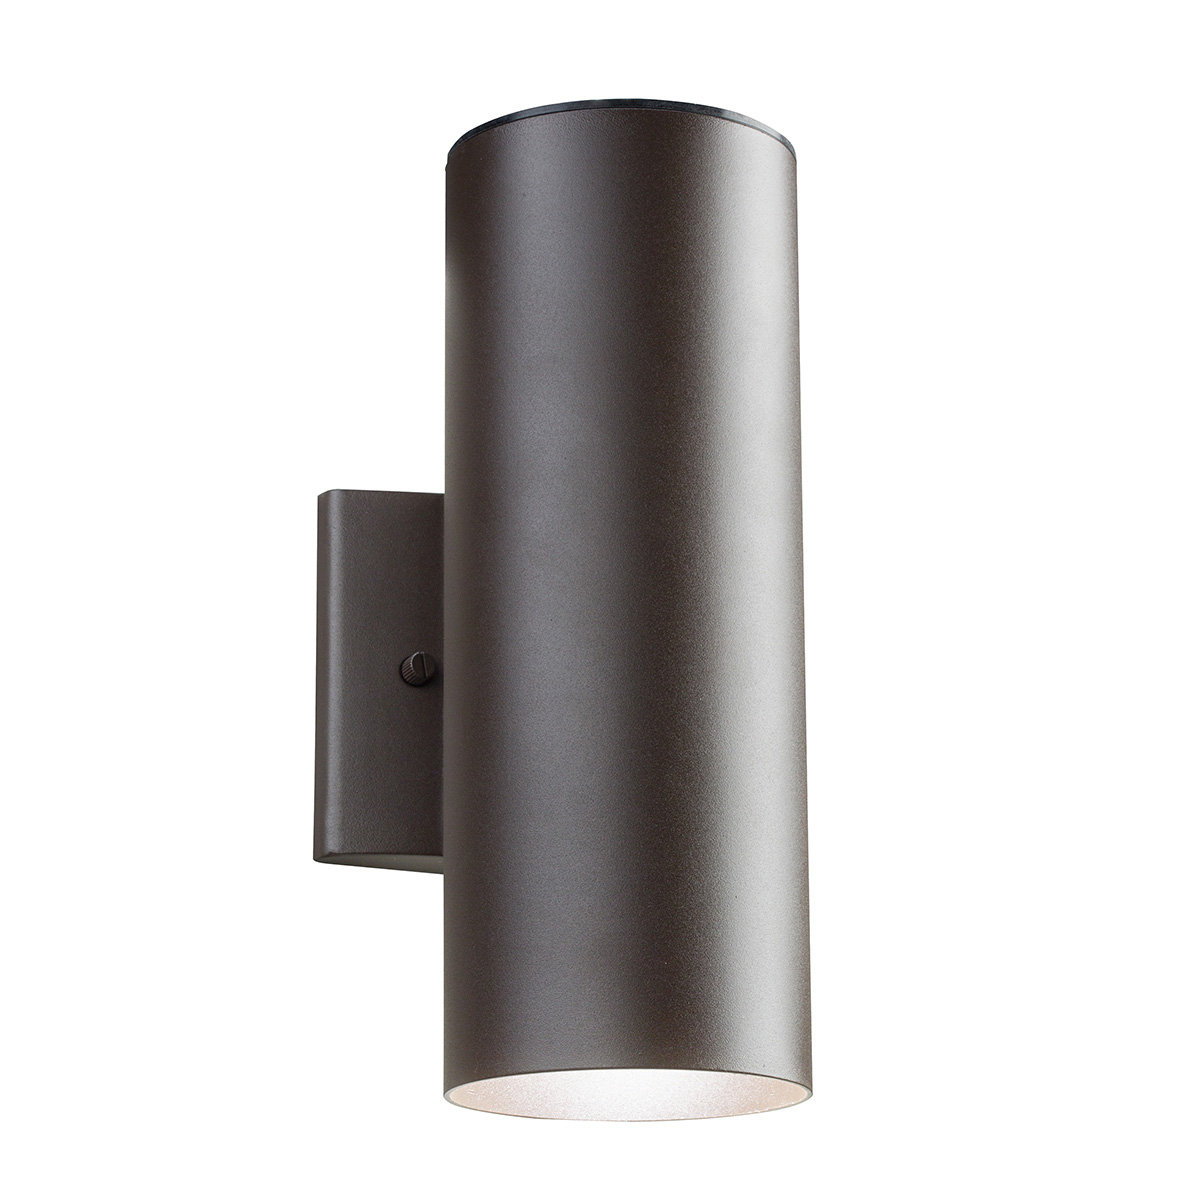 Outdoor led updown wall sconce by kichler 11251azt30 11251 outdoor led updown wall sconce by kichler 11251azt30 arubaitofo Gallery